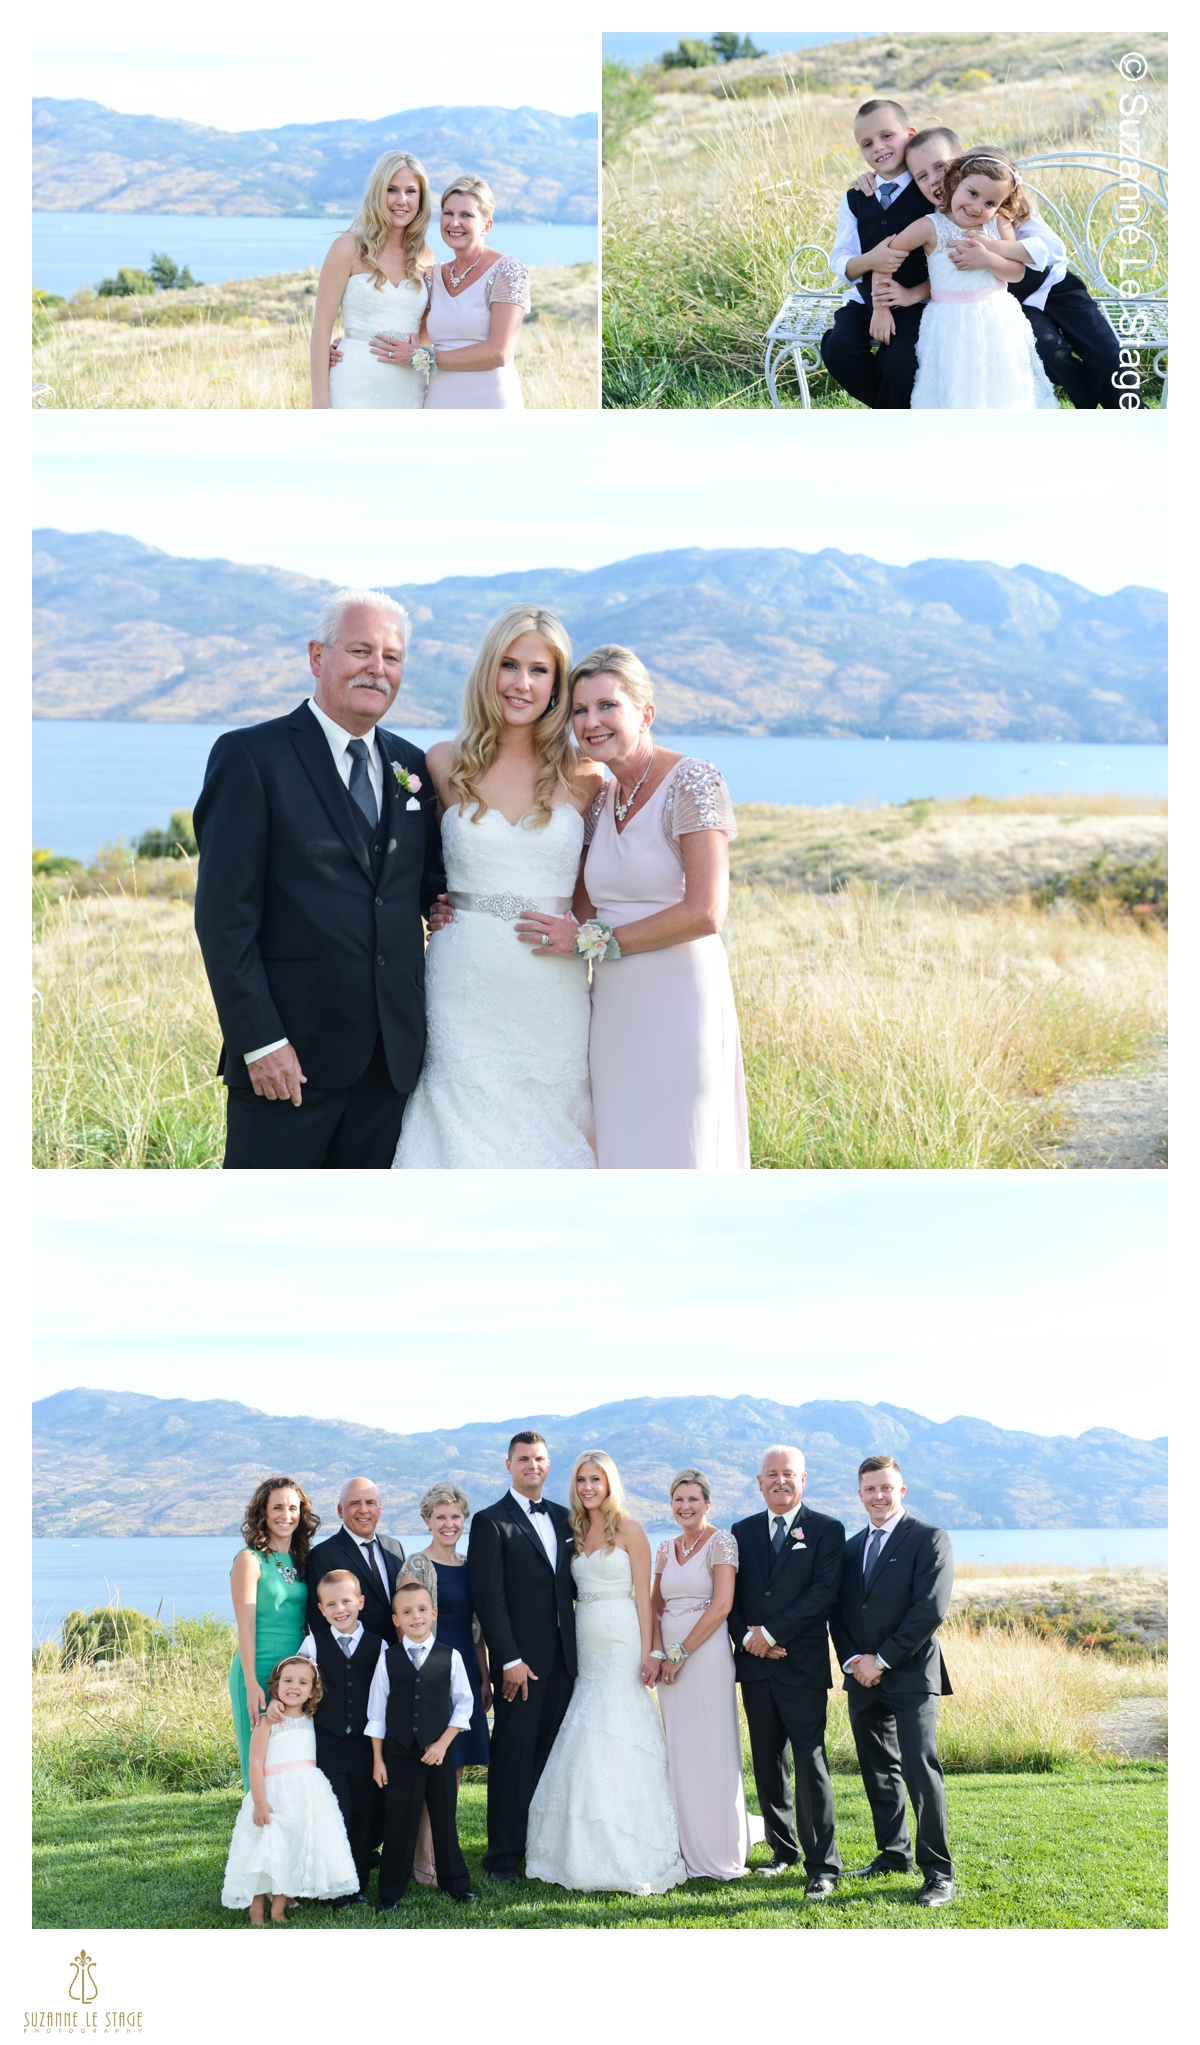 Kelowna Okanagan Wedding Photography - Suzanne Le Stage